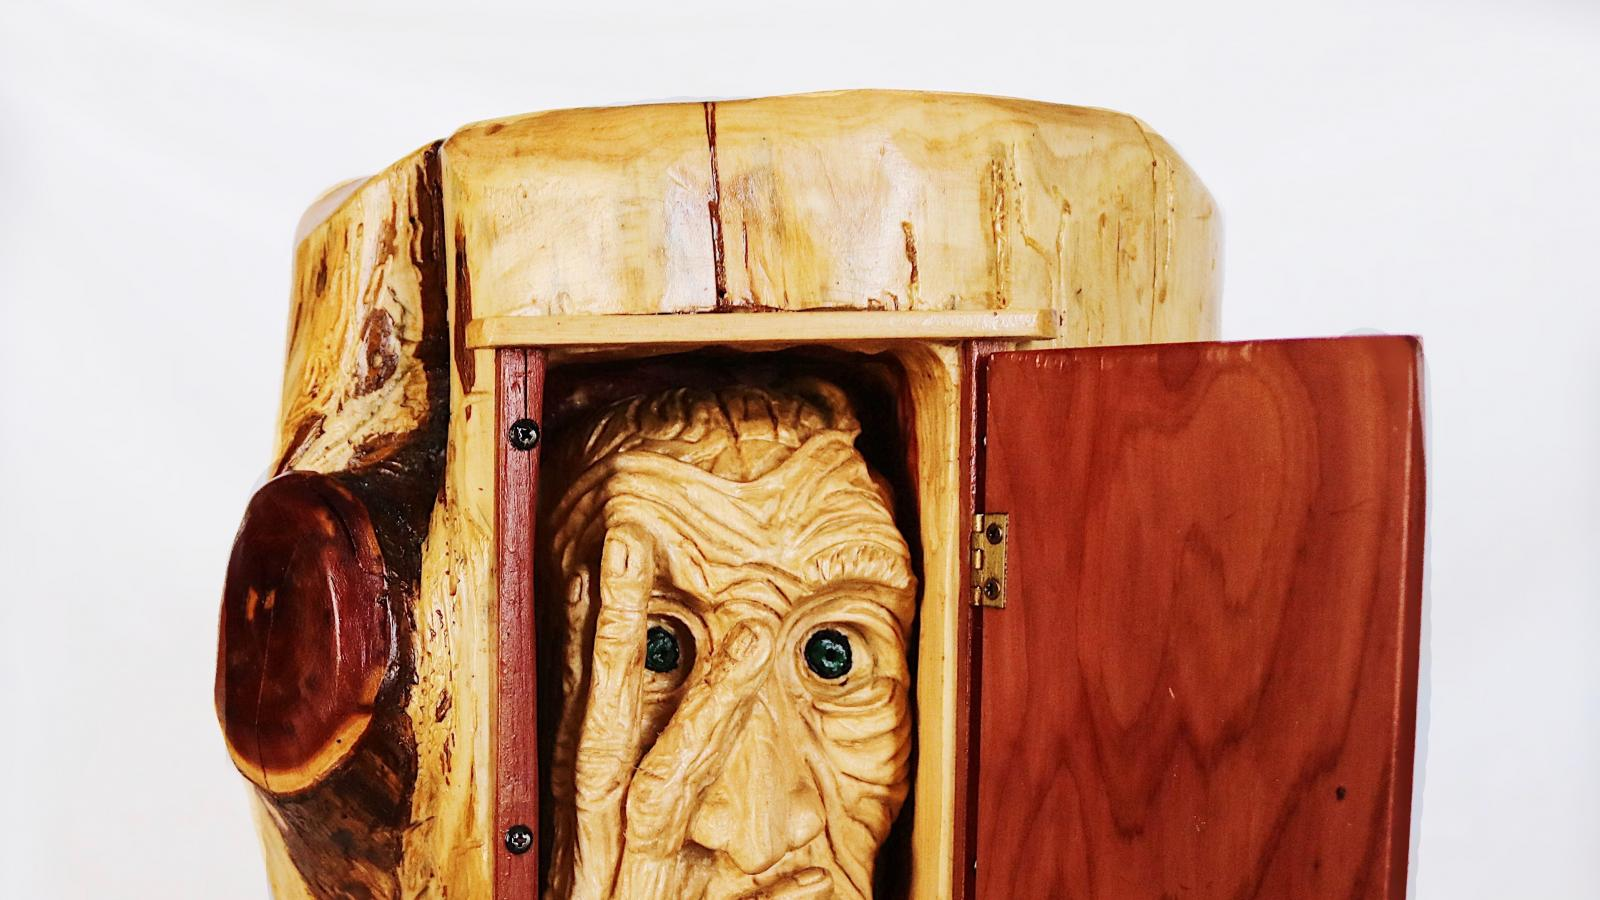 wood carving of a wrinkled face inside a log